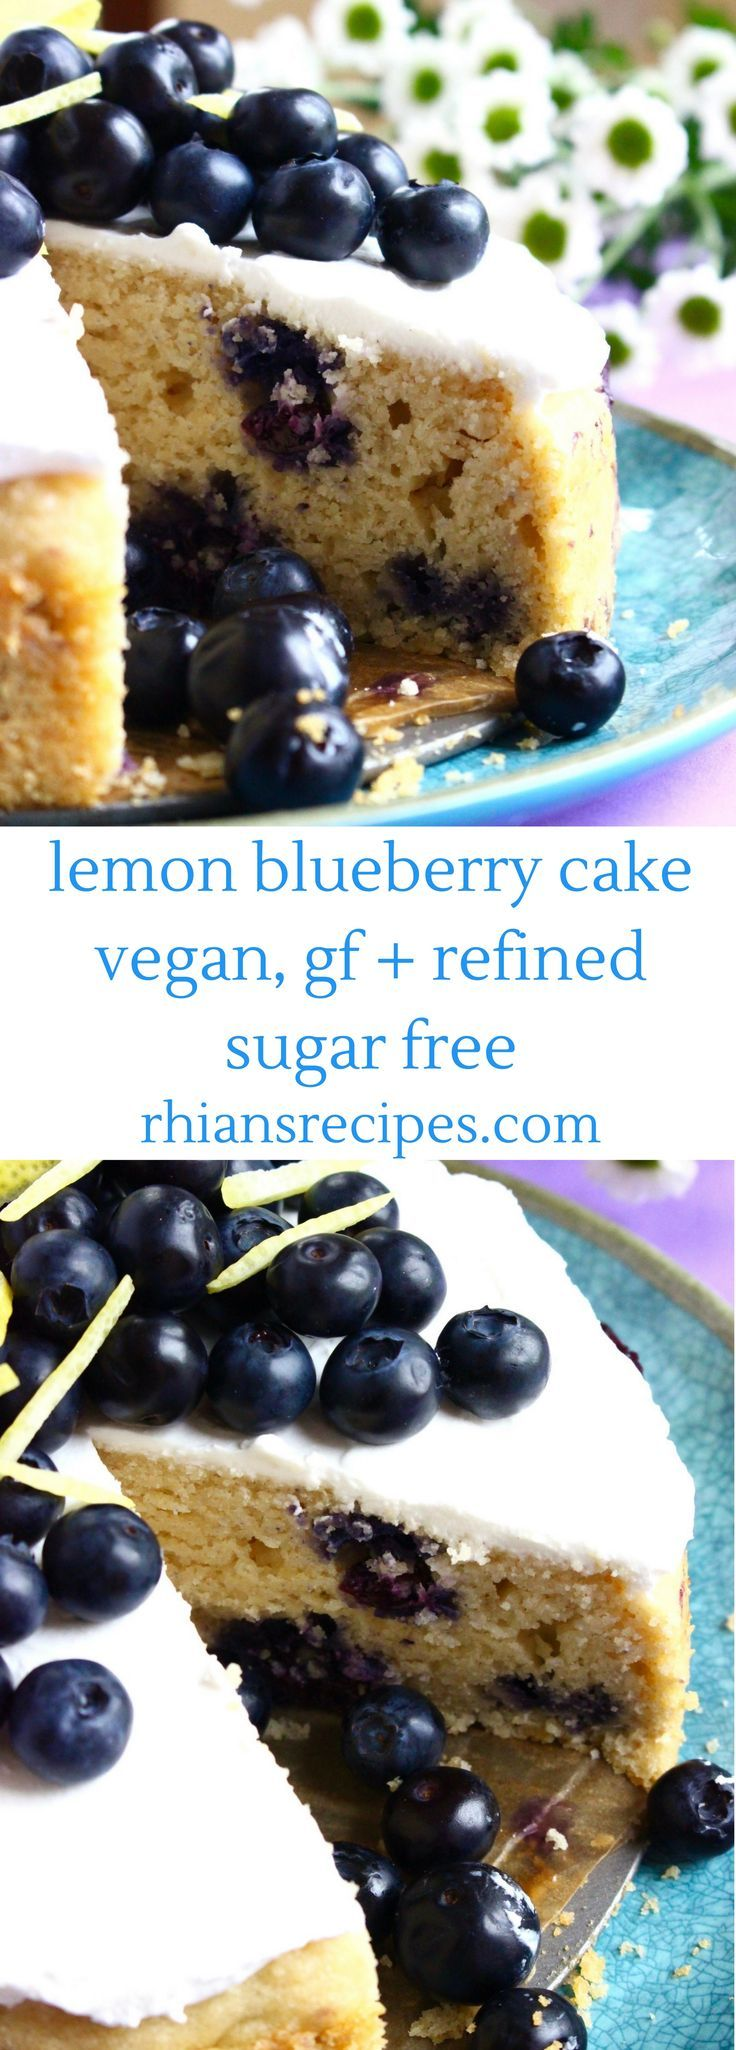 This Gluten-Free Vegan Lemon Blueberry Cake is so easy to make, super fruity, and includes a delicious cream cheese frosting! Refined sugar free.